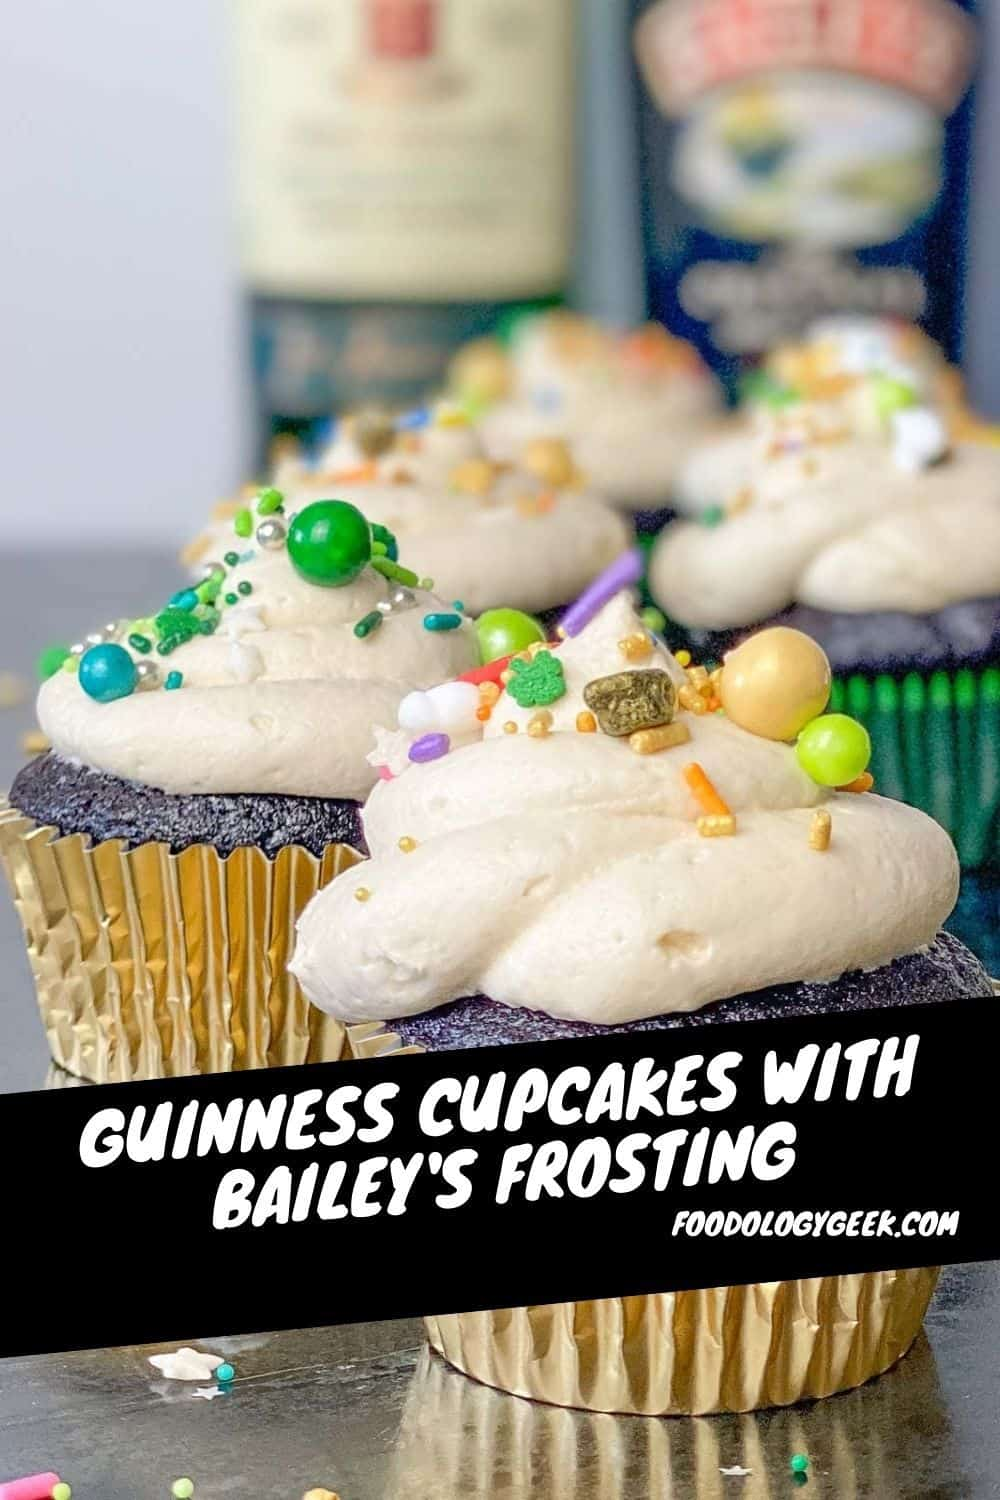 This cupcake is affectionately named after the boozy Irish Car Bomb drink made with Guinness Stout, Jameson Whiskey, and Baileys Irish Cream.